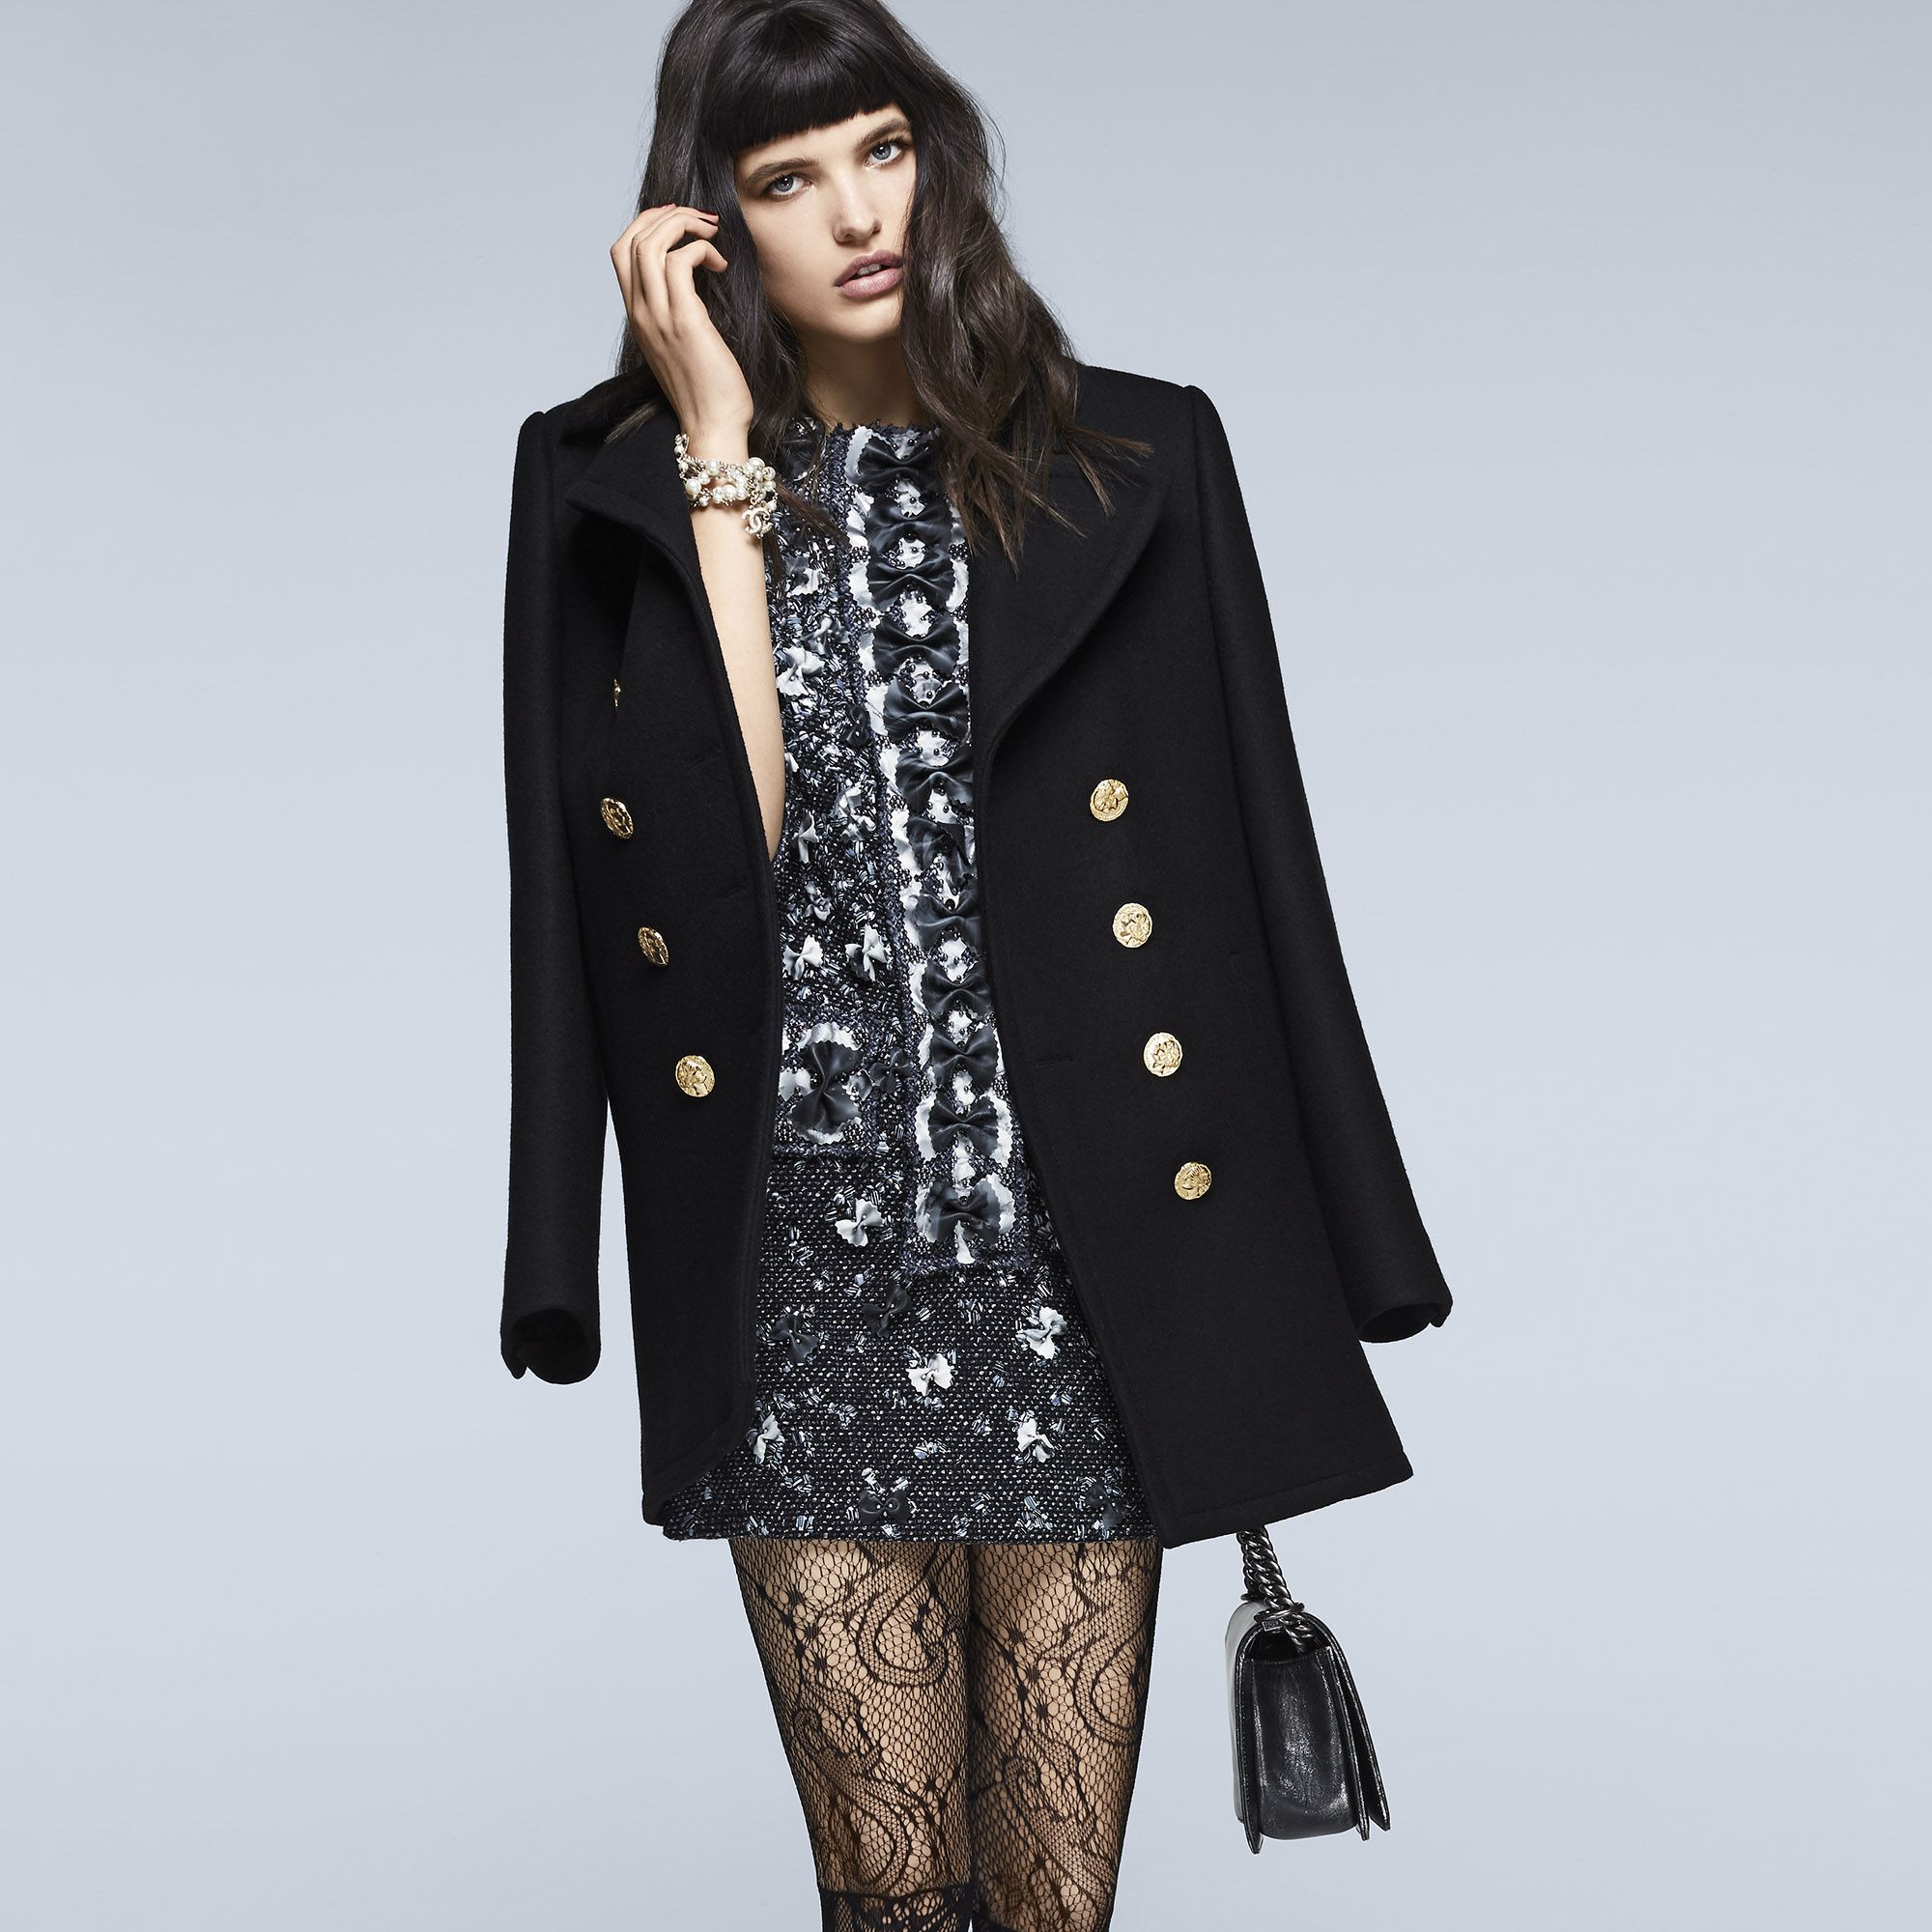 """<p><strong>Chanel </strong>coat, $5,850, tunic, $36,600, necklace (worn as bracelet), $1,475, bag, $7,500, tights, $375, and shoes, $1,100, 800-550-0005.</p><p><strong>BEAUTY BAZAAR: </strong><a href=""""http://www.ulta.com/ulta/browse/productDetail.jsp?productId=xlsImpprod12292013"""" target=""""_blank"""">Rusk Volumizing Mousse</a> delivers instant oomph ($18).</p>"""